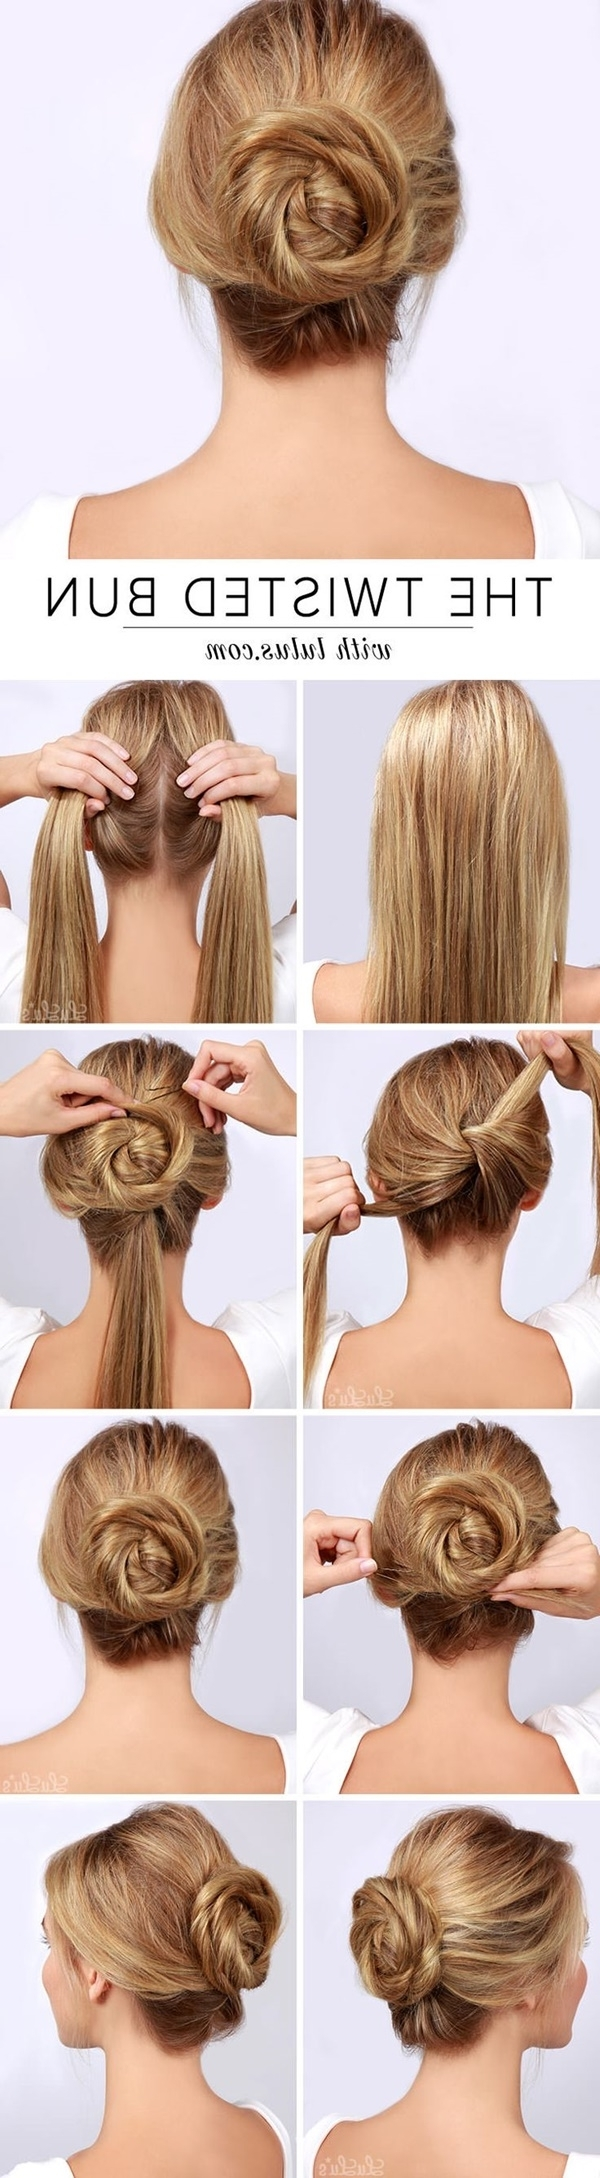 101 Cute & Easy Bun Hairstyles For Long Hair And Medium Hair For Easy Updo Hairstyles For Medium Hair To Do Yourself (View 2 of 15)